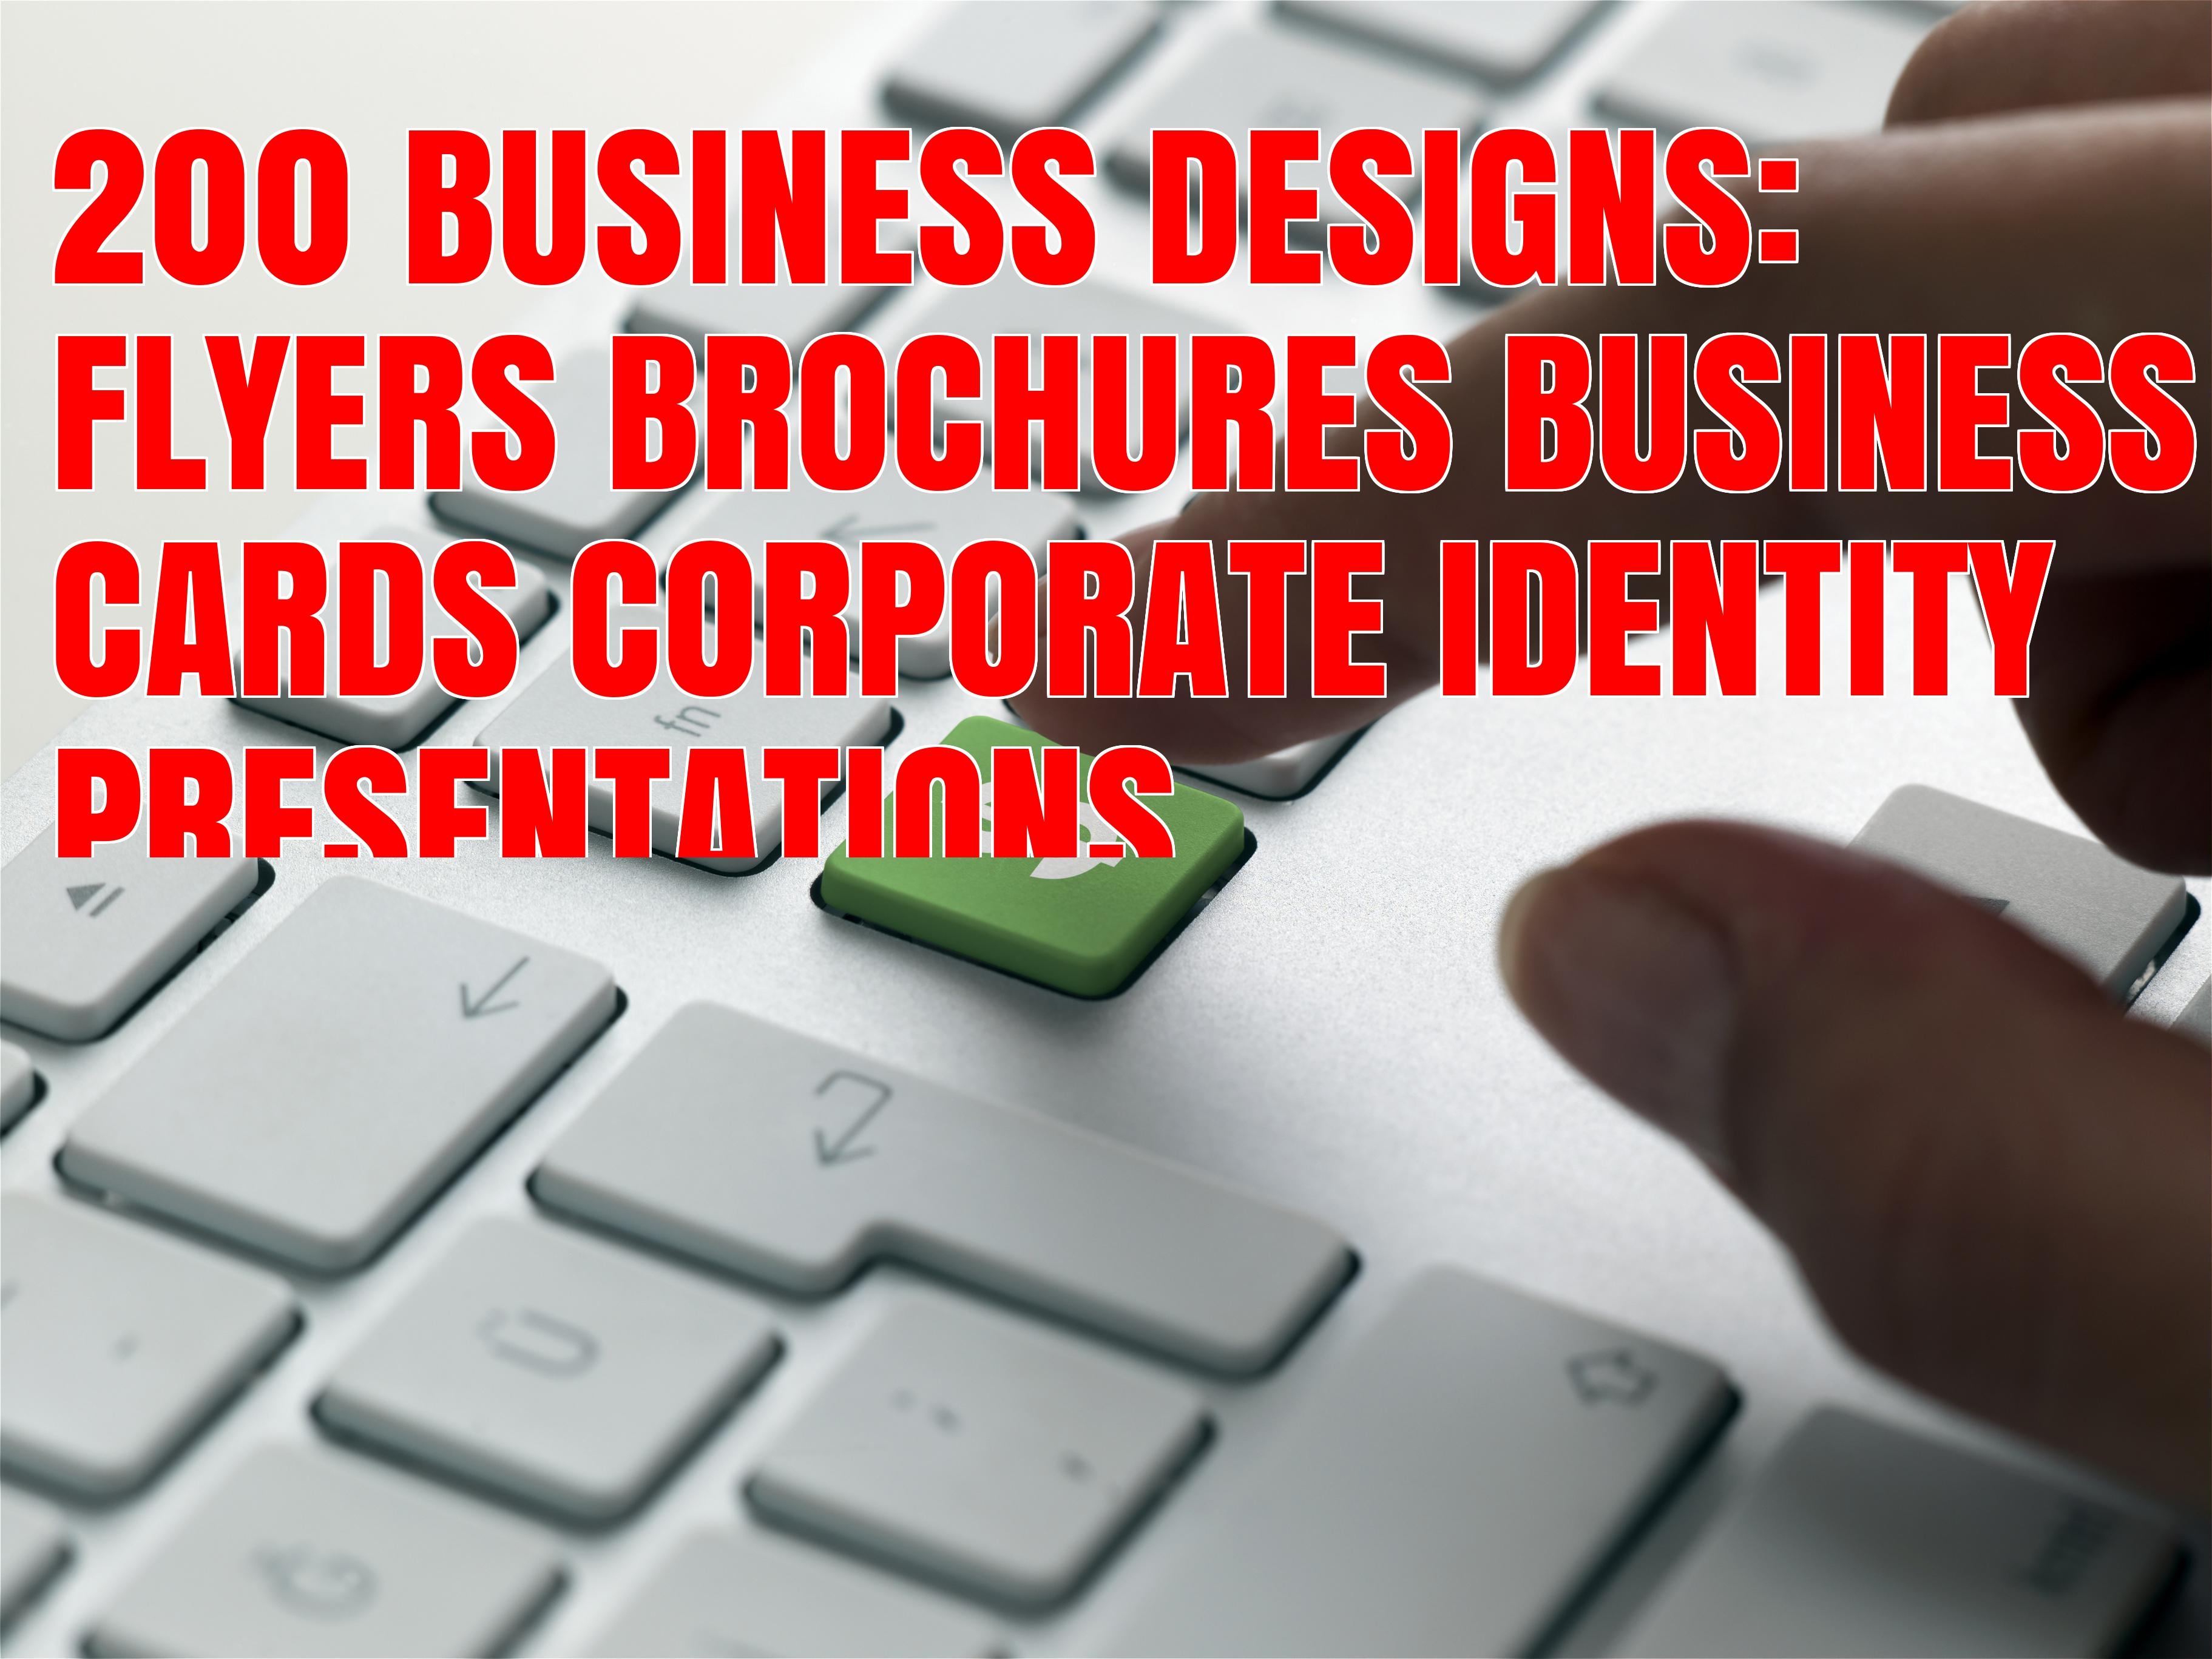 I will supply 200 PROFESSIONAL Business Design Resources